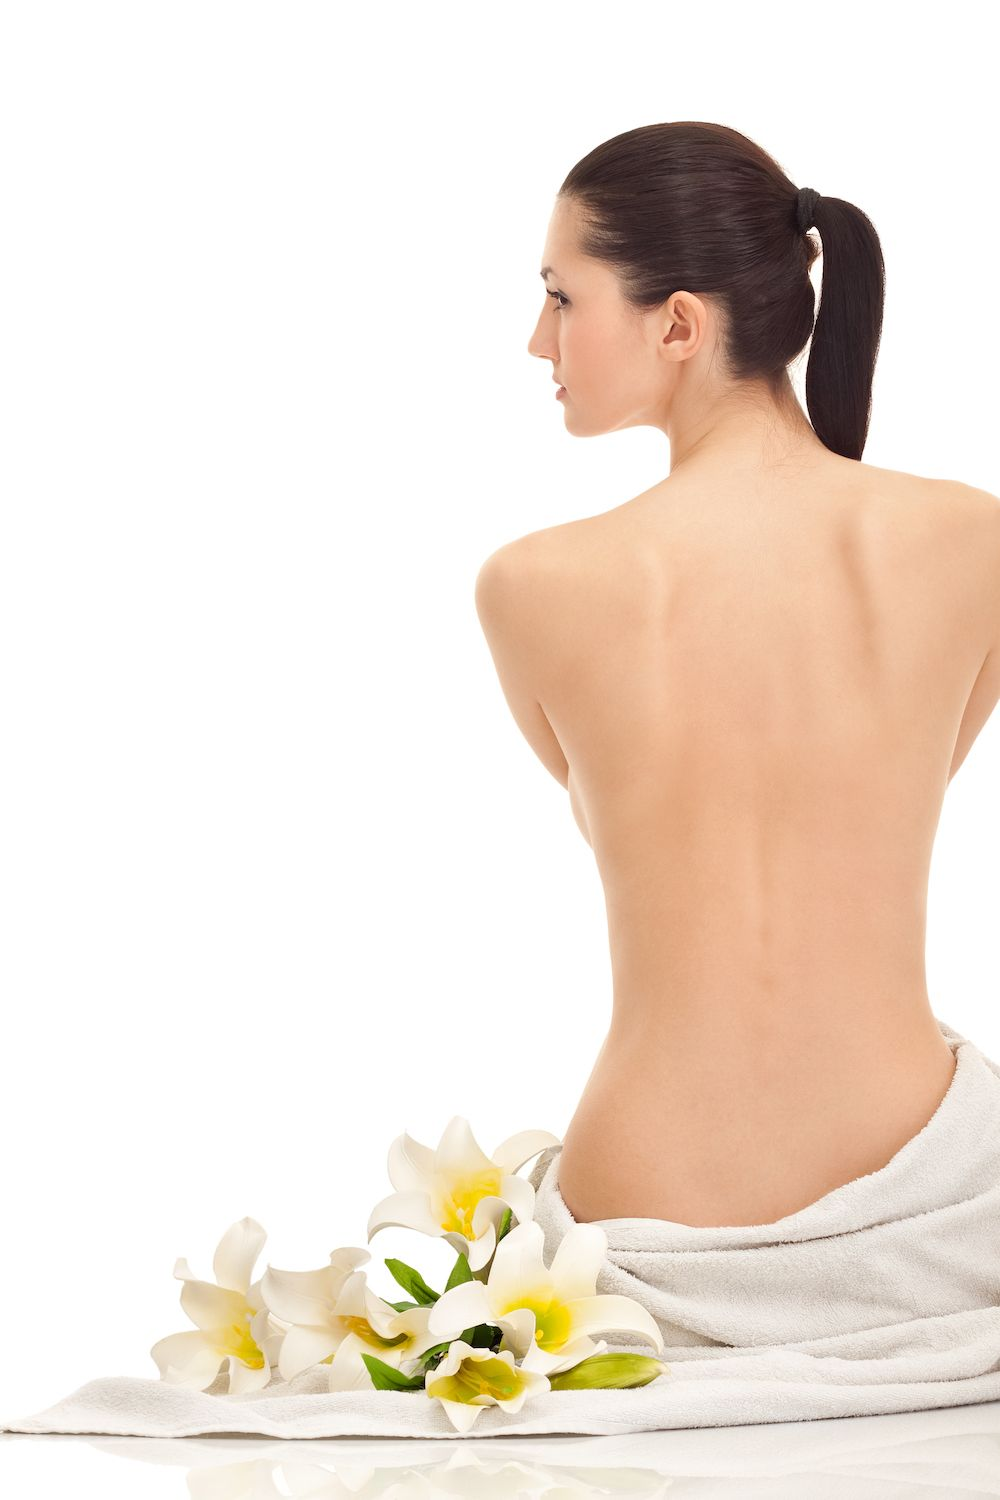 Who Is a Qualified Candidate for Cryoslimming?